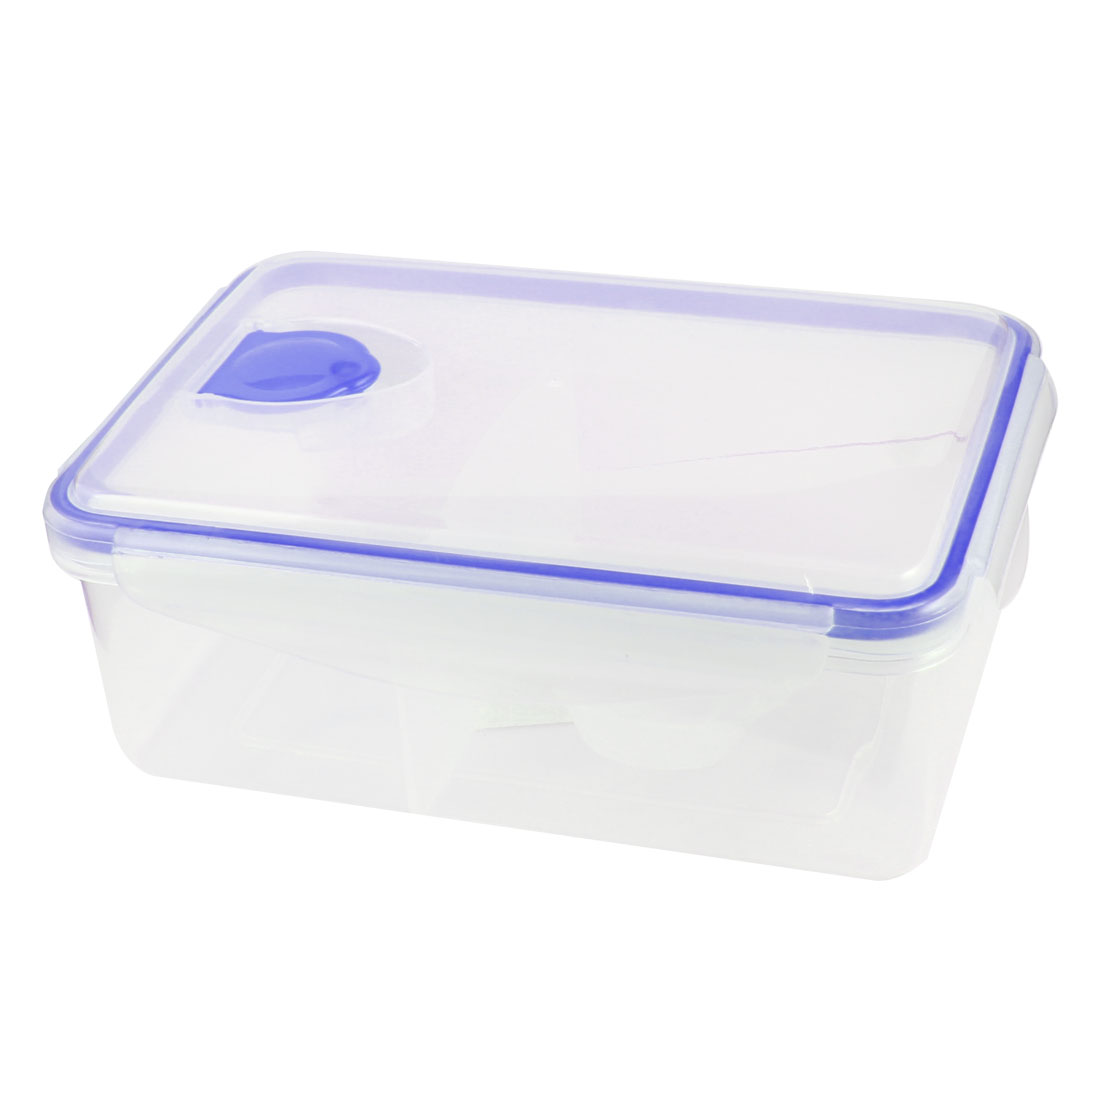 Picnic Blue Clear Plastic 2 Compartments Meal Lunch Pail Box w Spoon